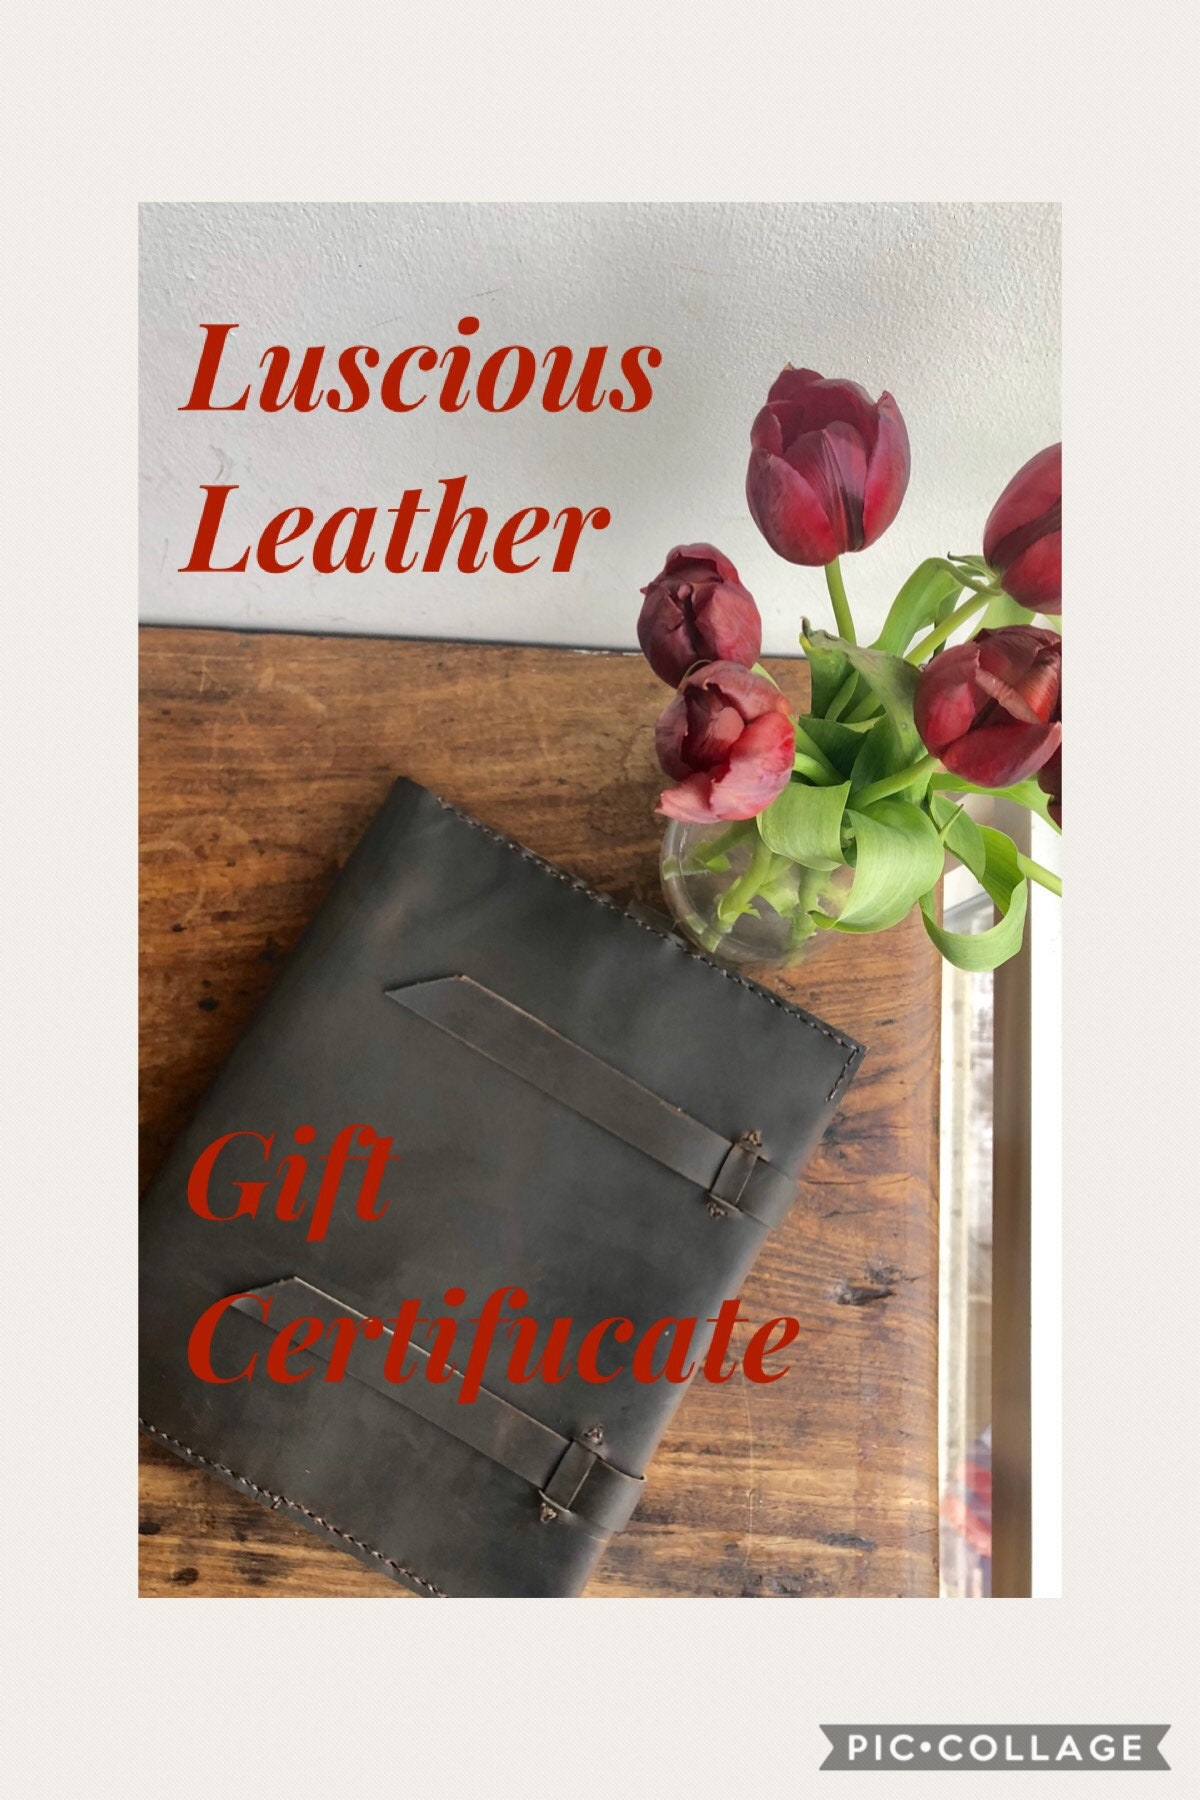 Gift Certificate Custom Leather Goods Luscious Fathers Day Graduation Birthday Made By Hand In NYC